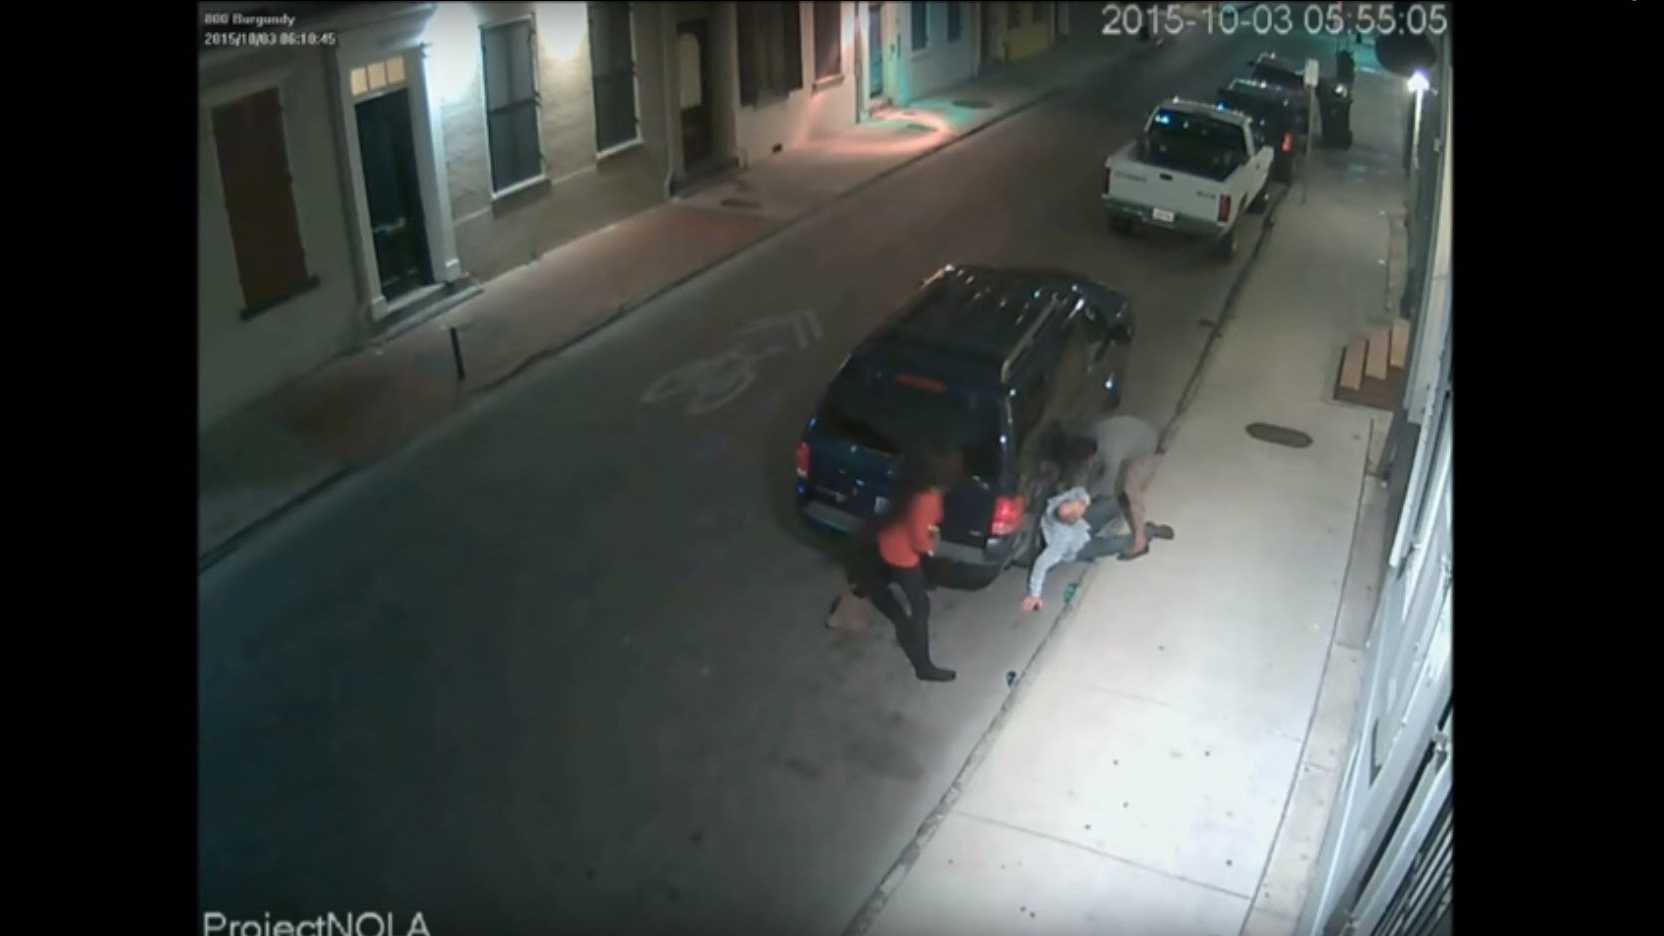 On October 3, 2015, a man was approached by two women, who knocked him to the ground and proceeded to steal his property.